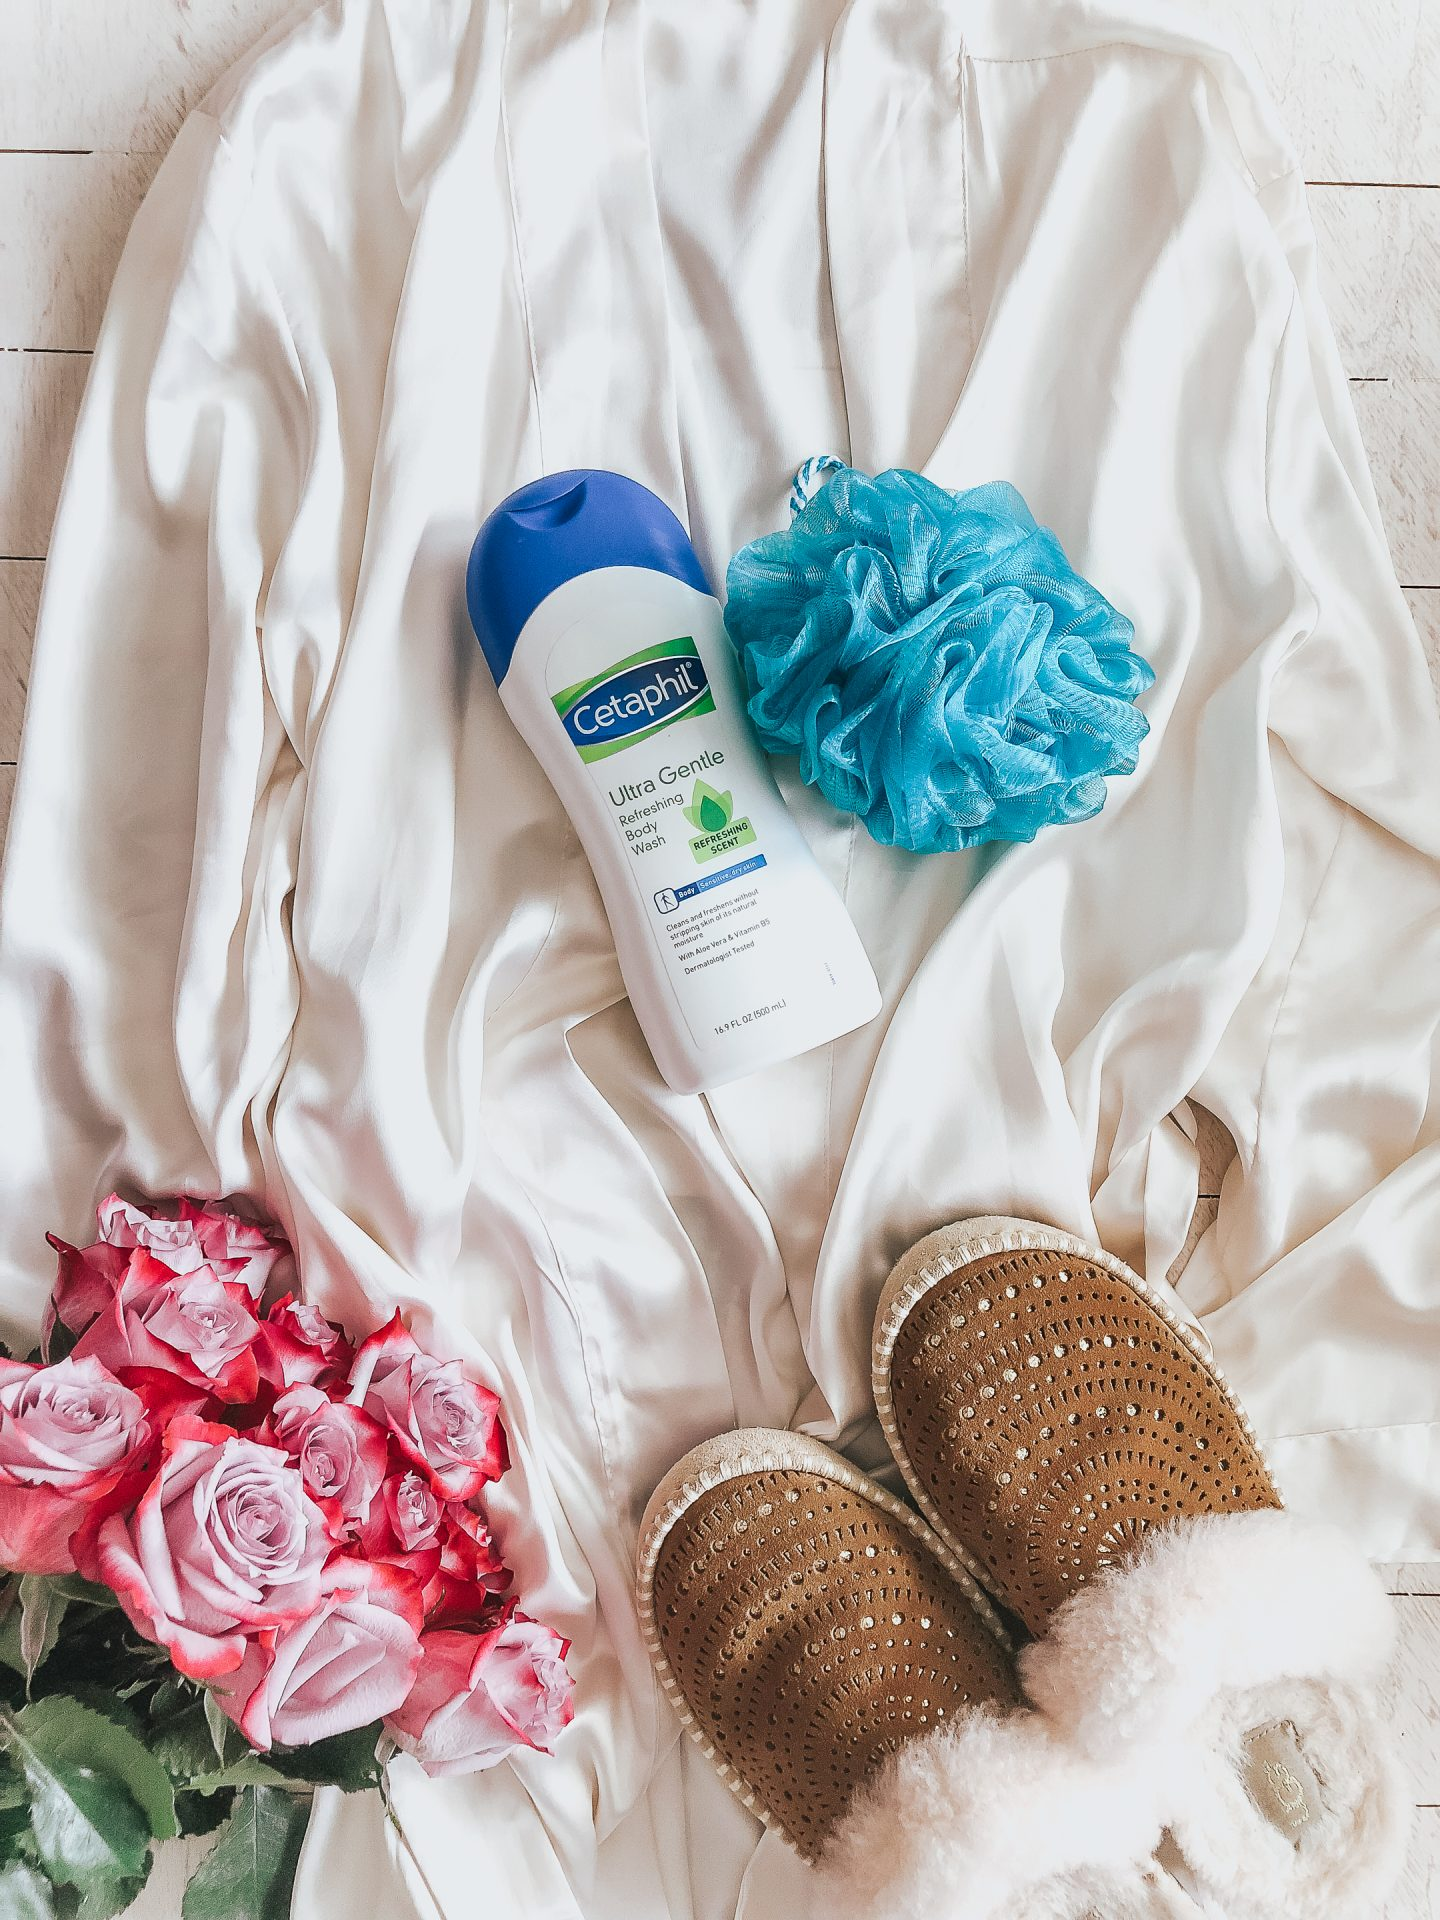 Cetaphil body wash for sensitive skin, CVS, year round skin care for the whole family